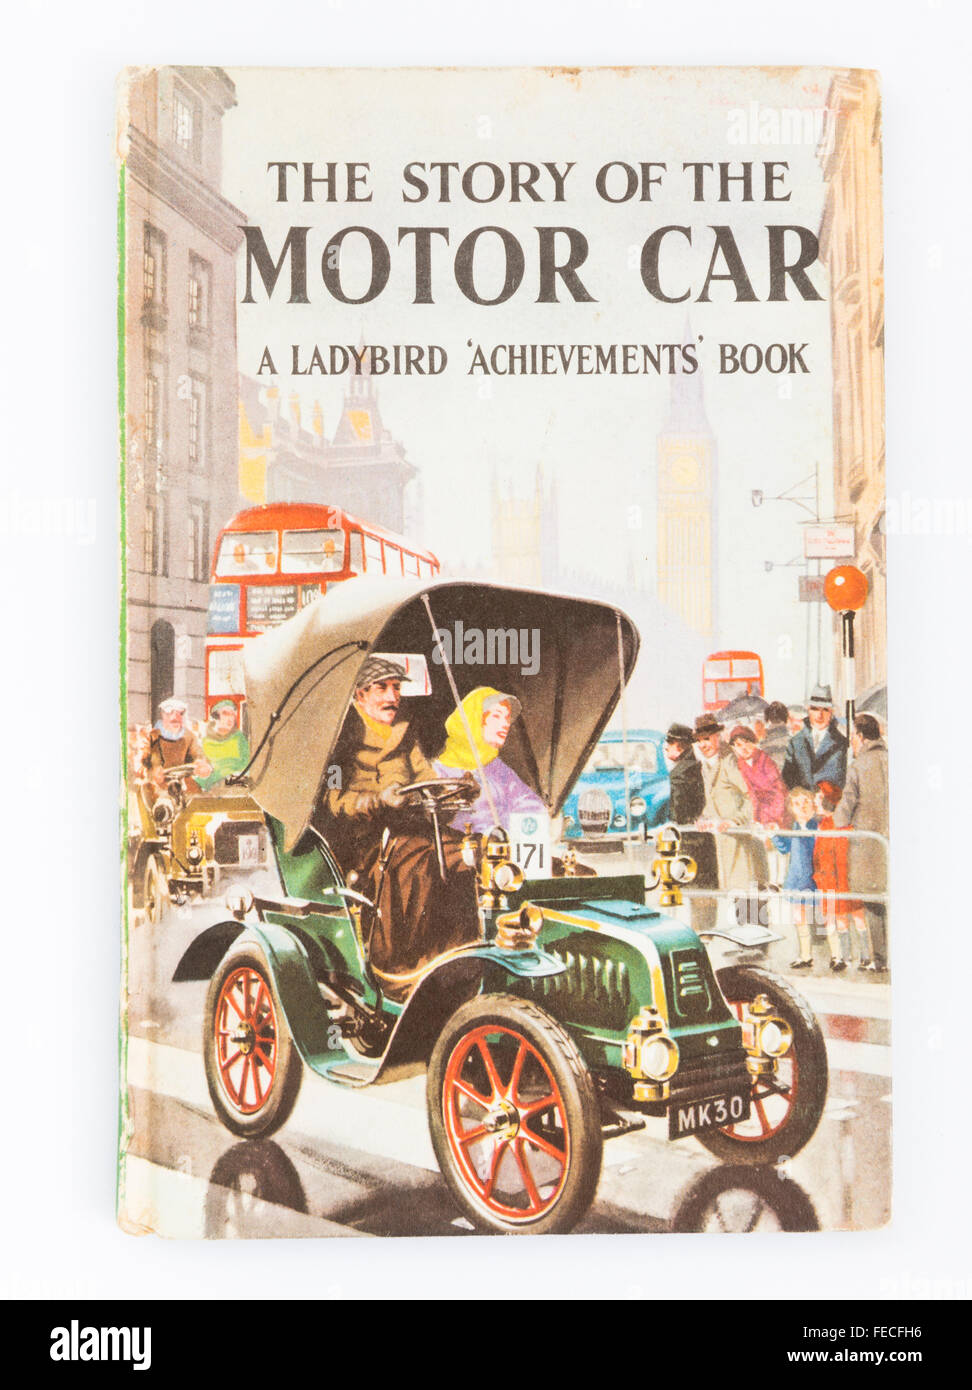 'The story of the motor car' Ladybird book - Stock Image